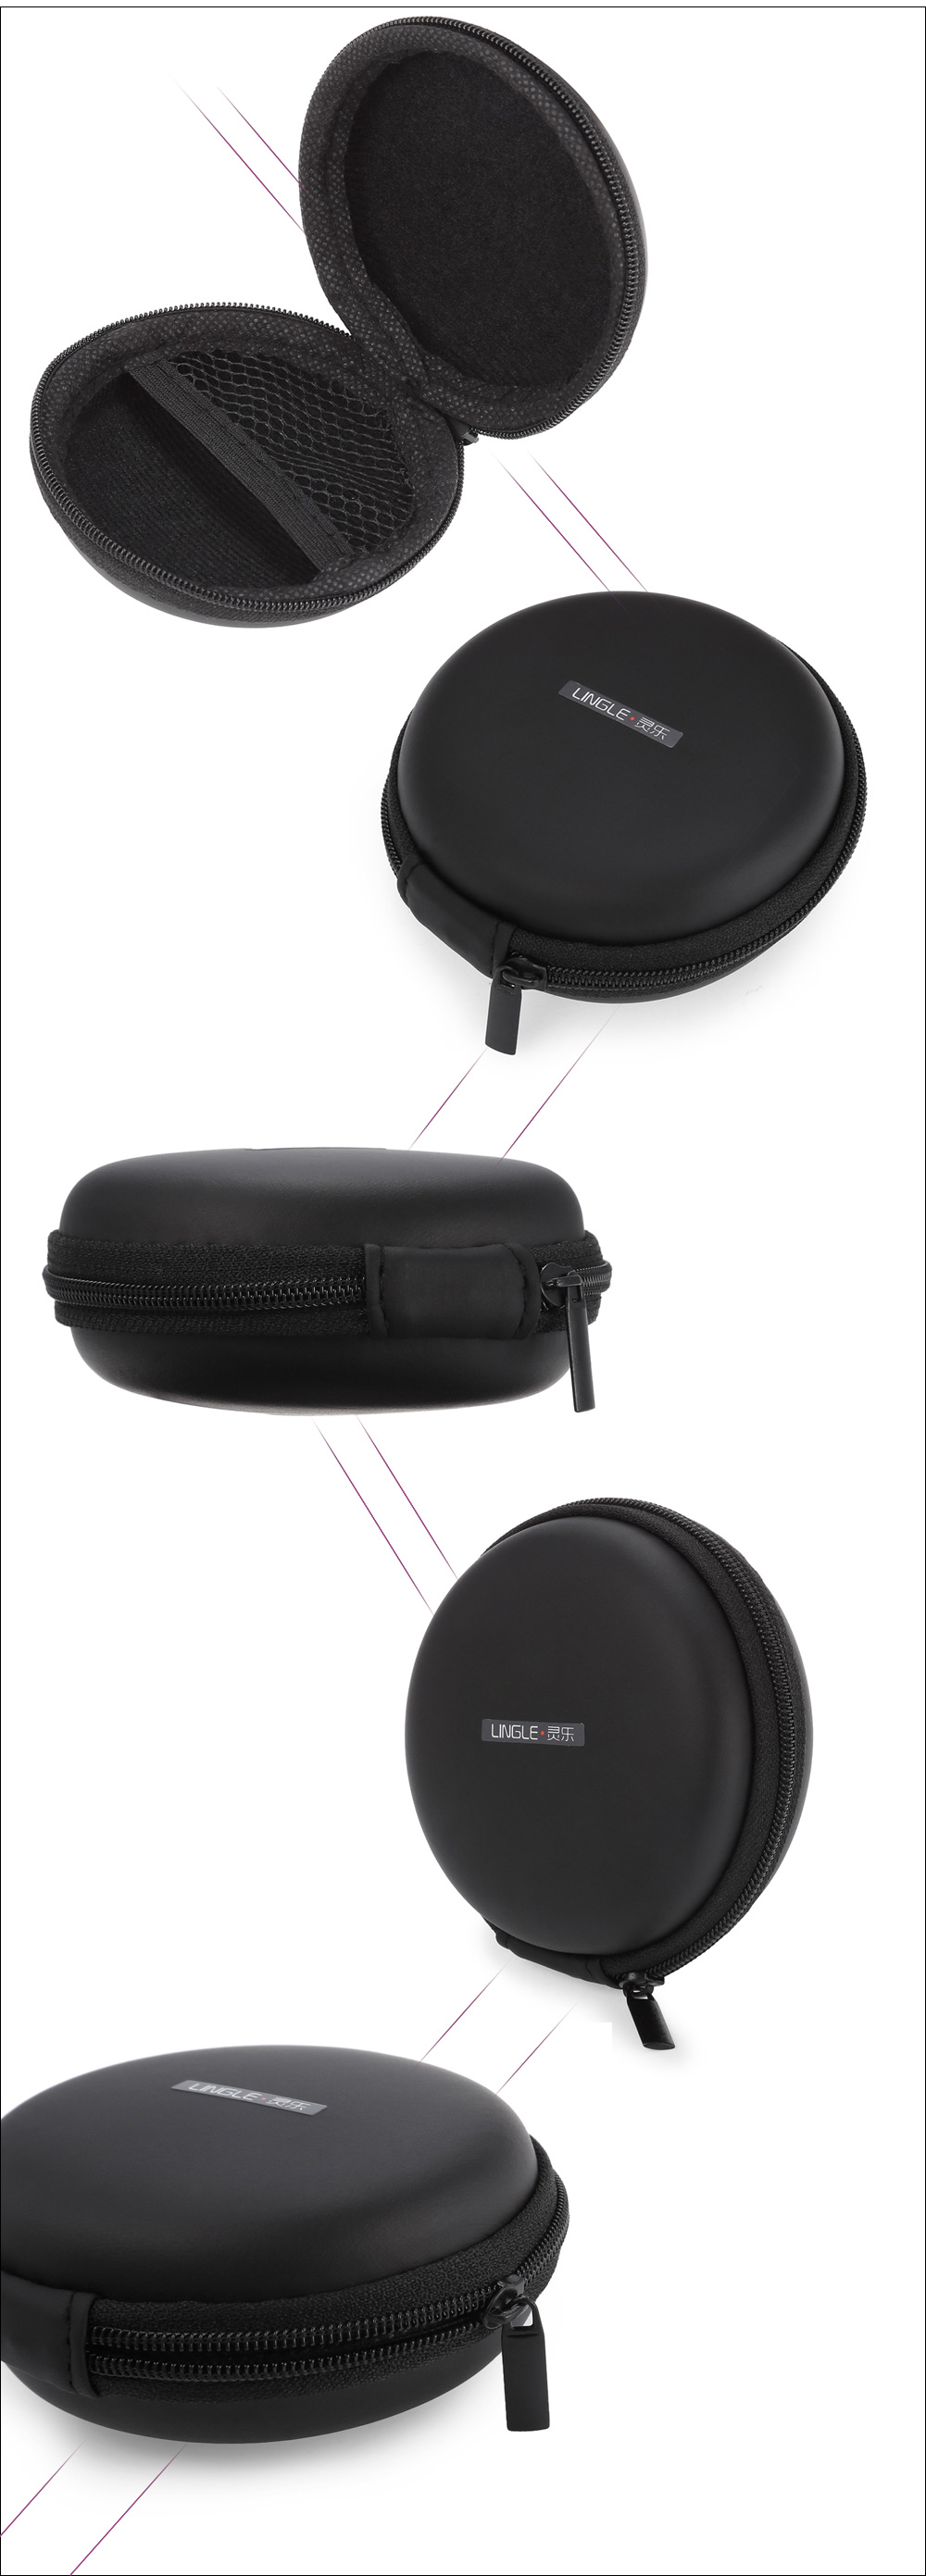 LINGLE AT597 8.5cm Universal Action Camera Case